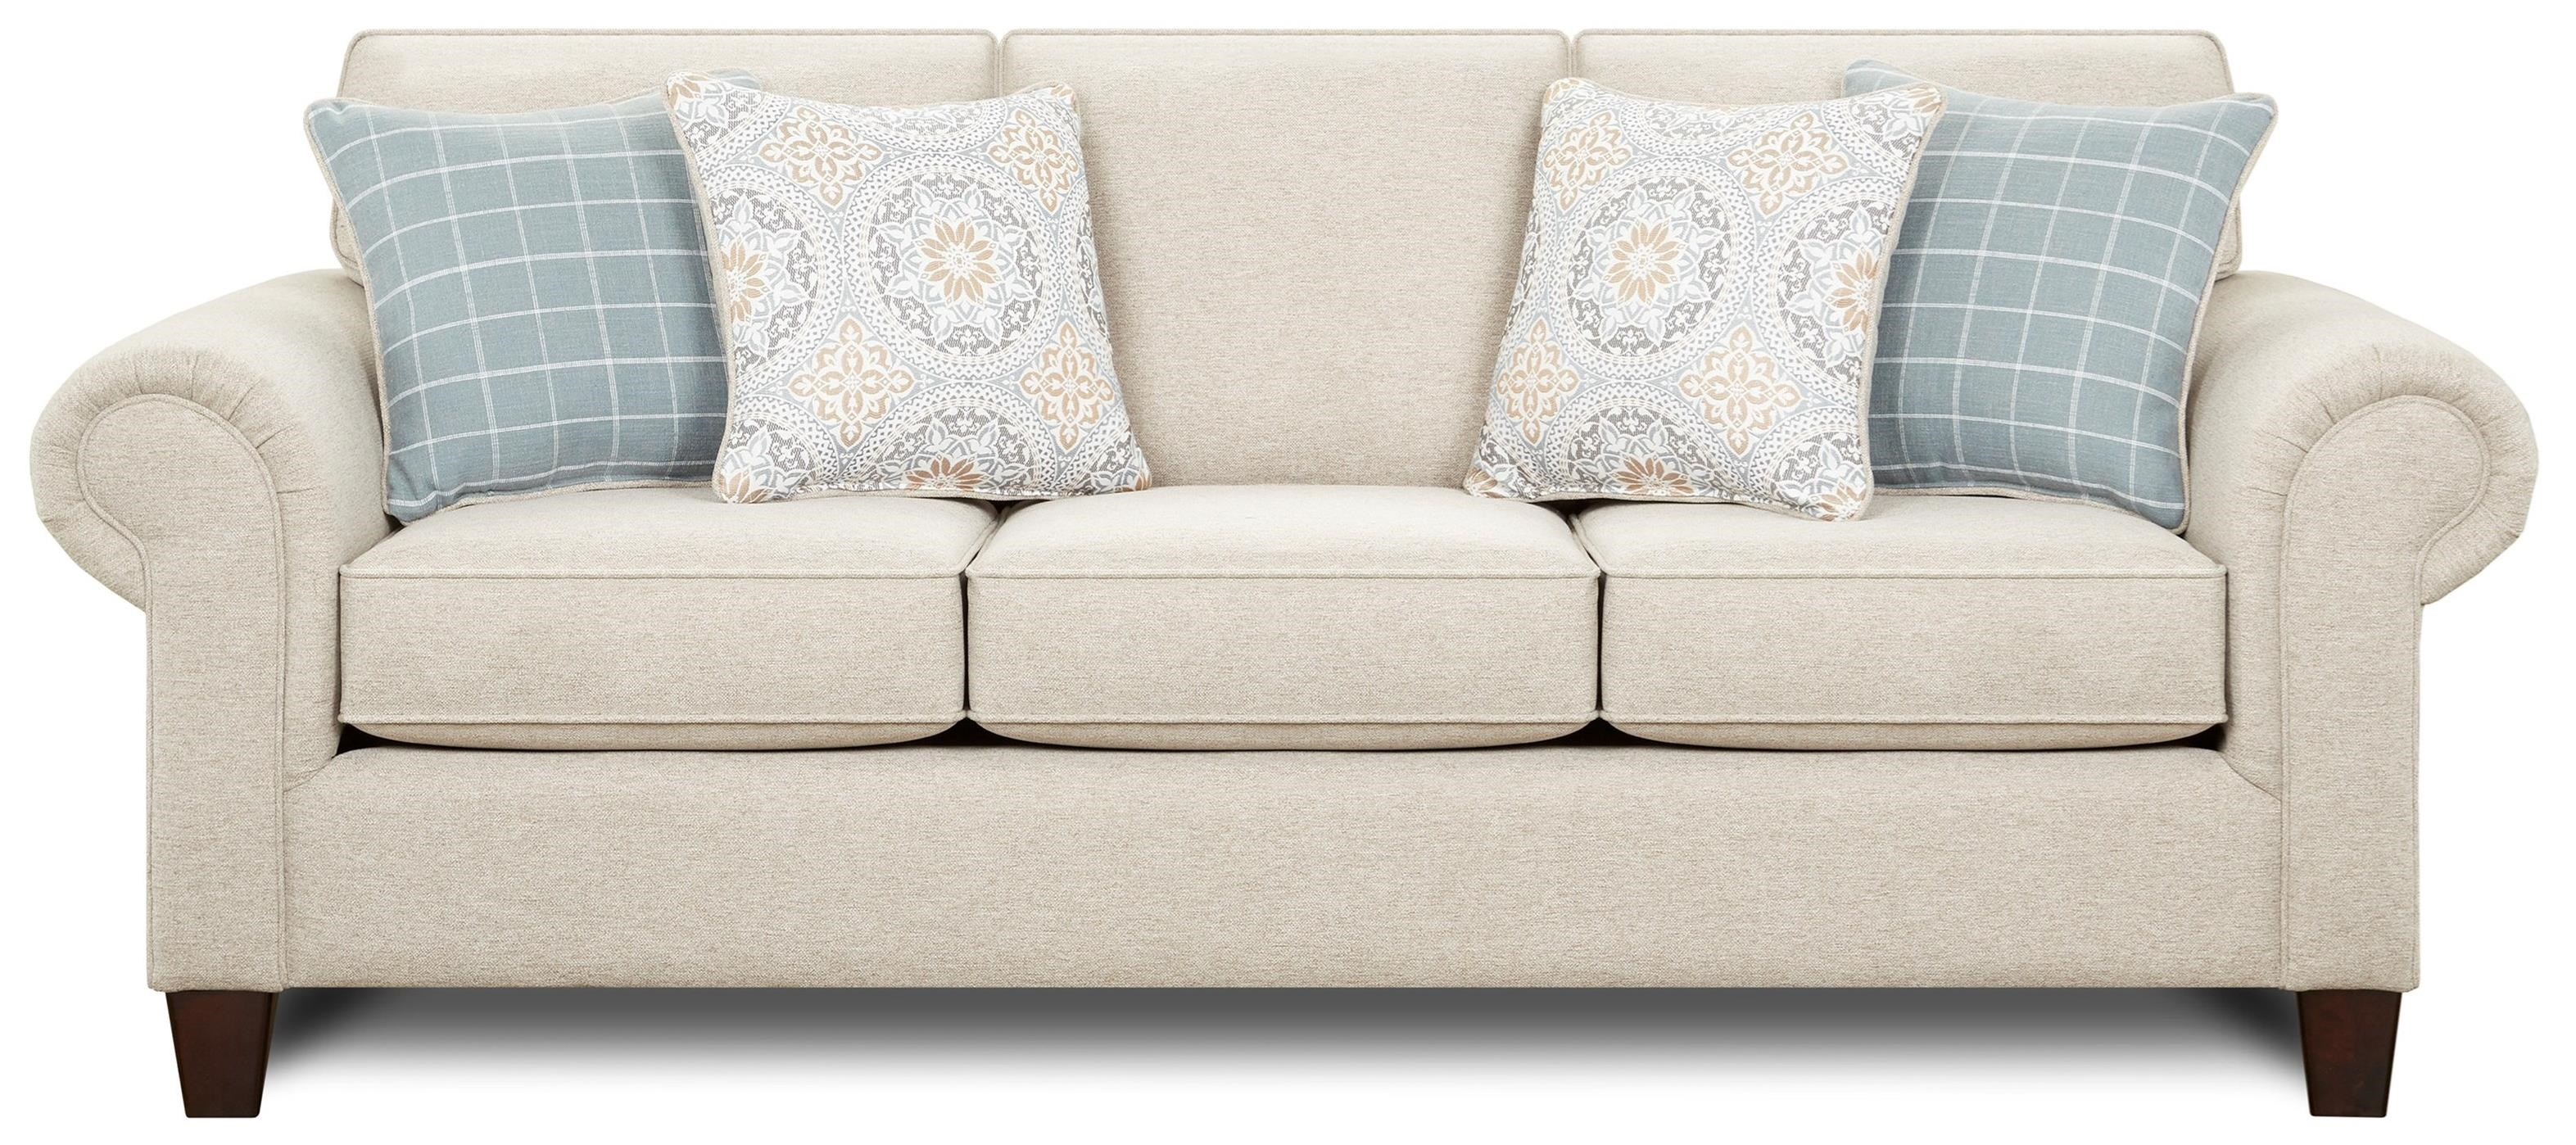 3100 Sofa by Fusion Furniture at Wilson's Furniture